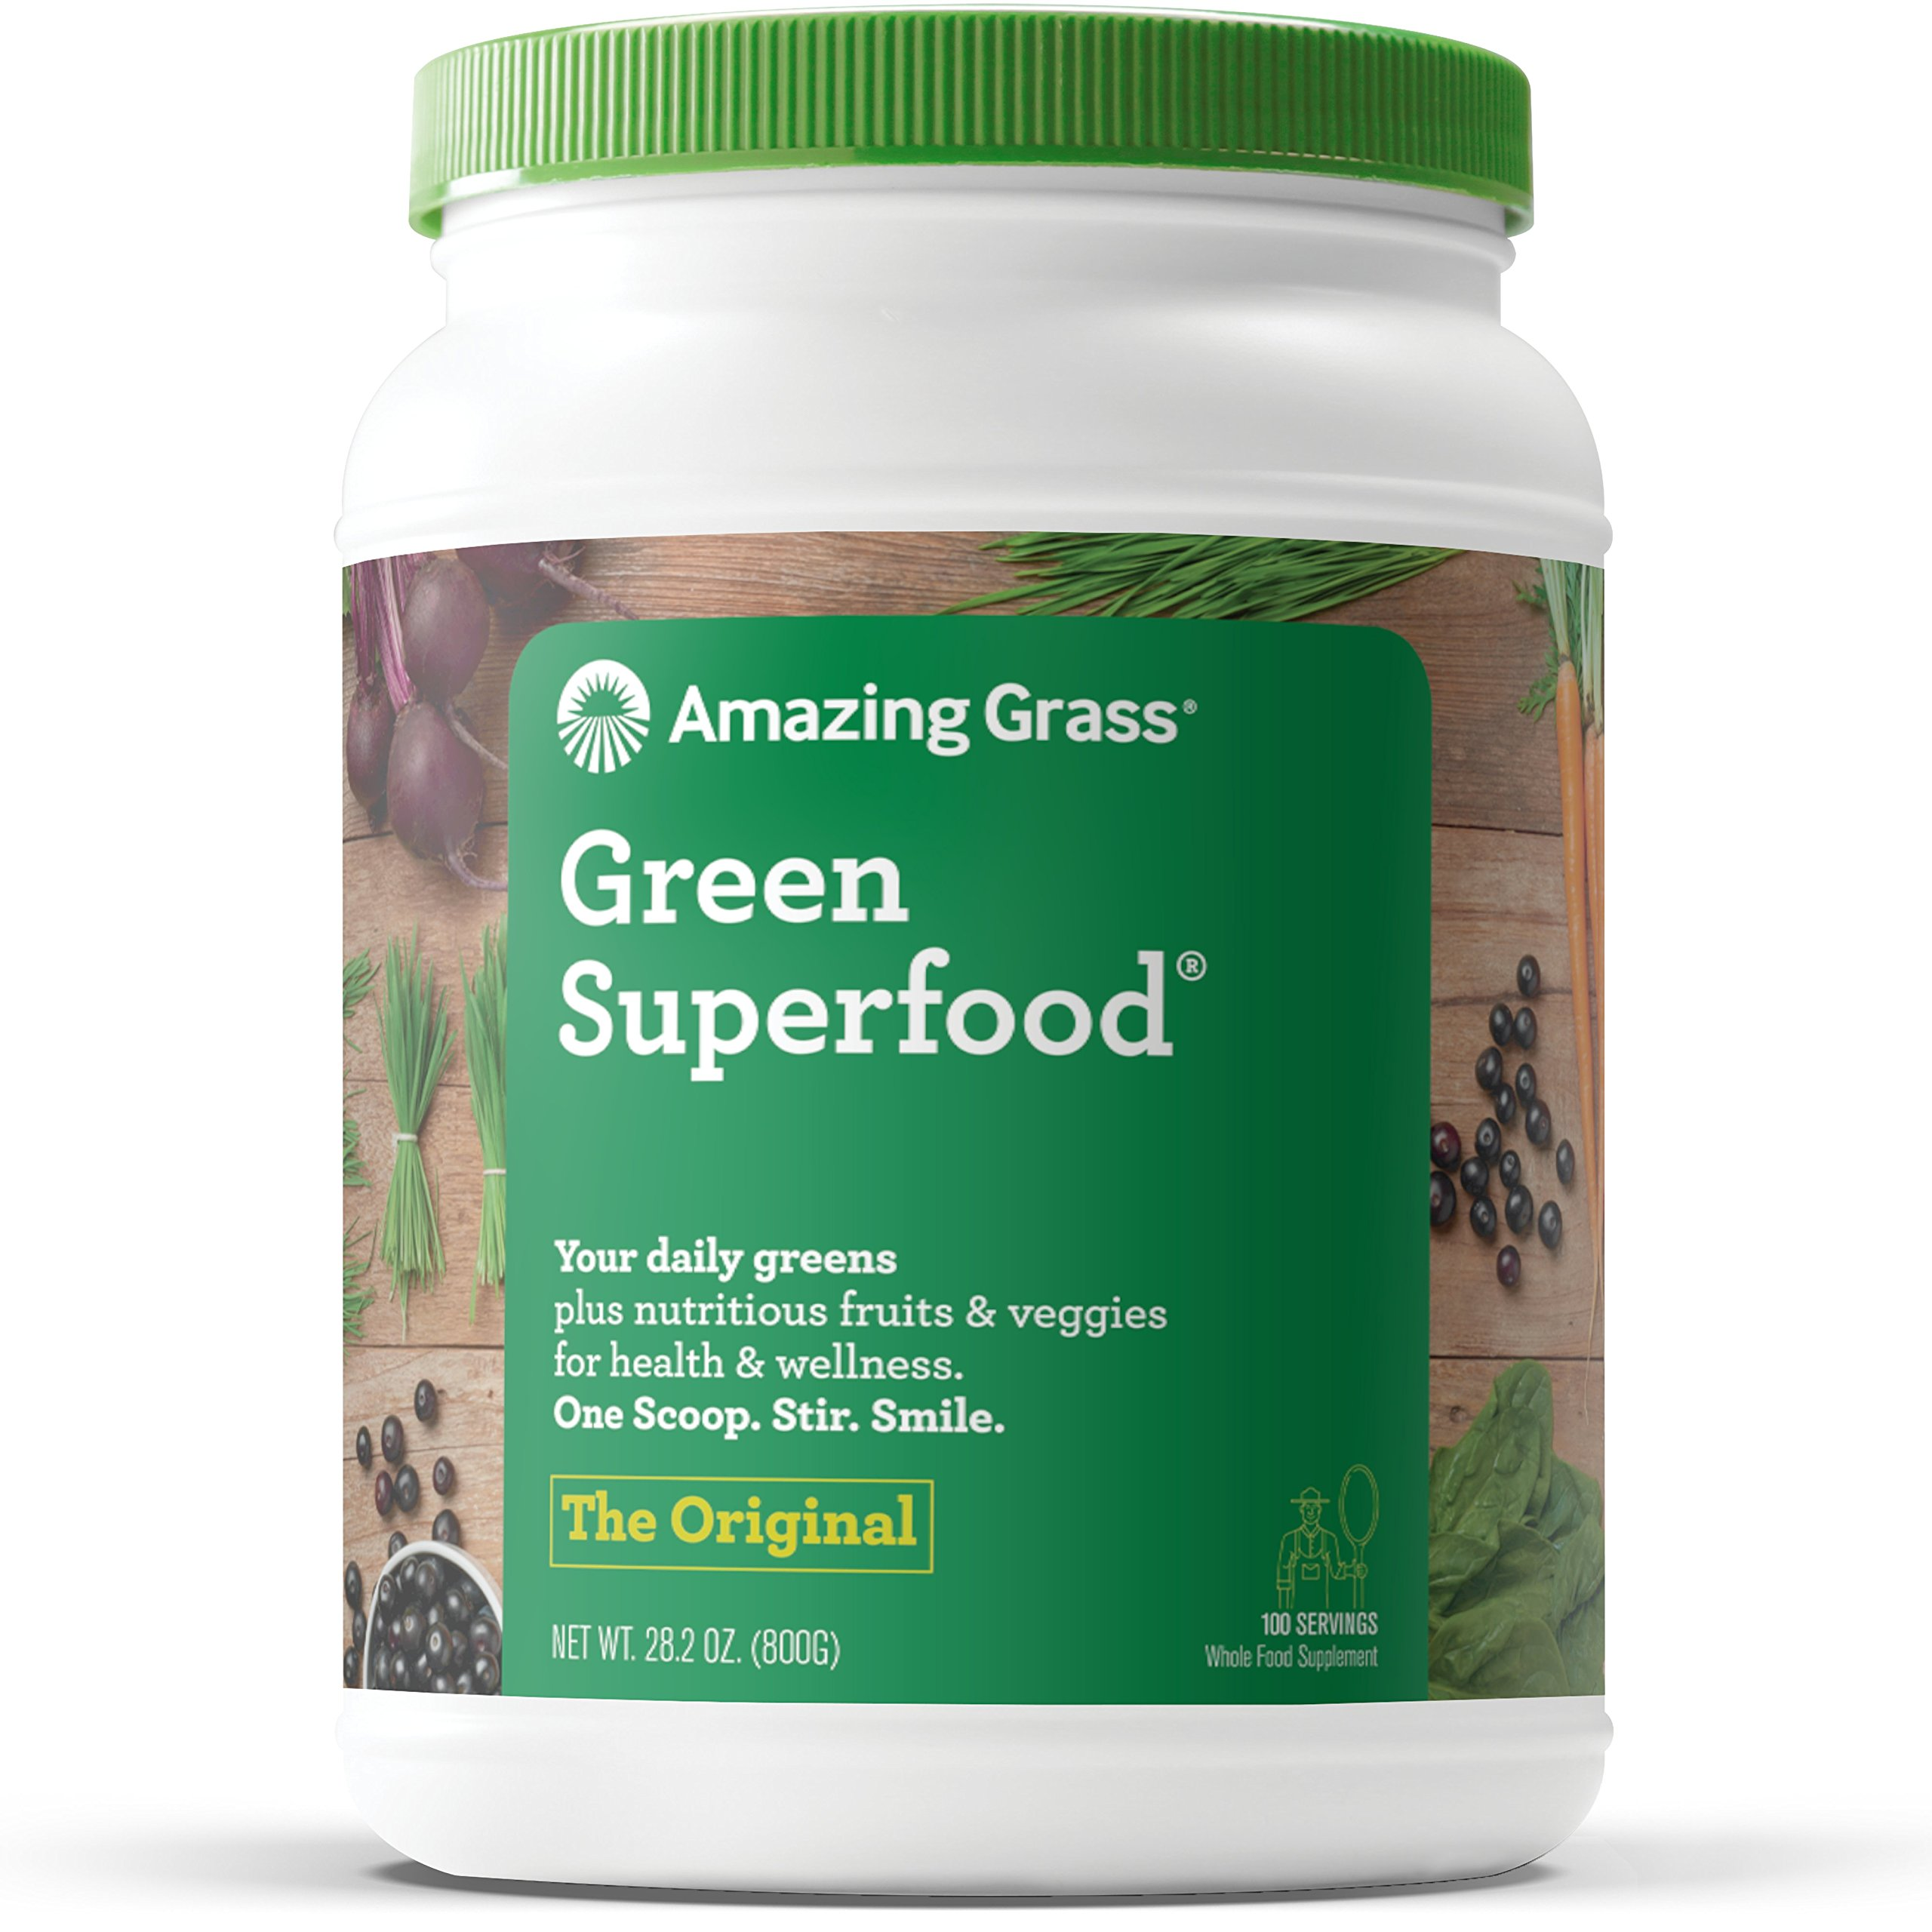 Amazing Grass Green Superfood Organic Powder with Wheat Grass and Greens, Flavor: Original, 100 Servings